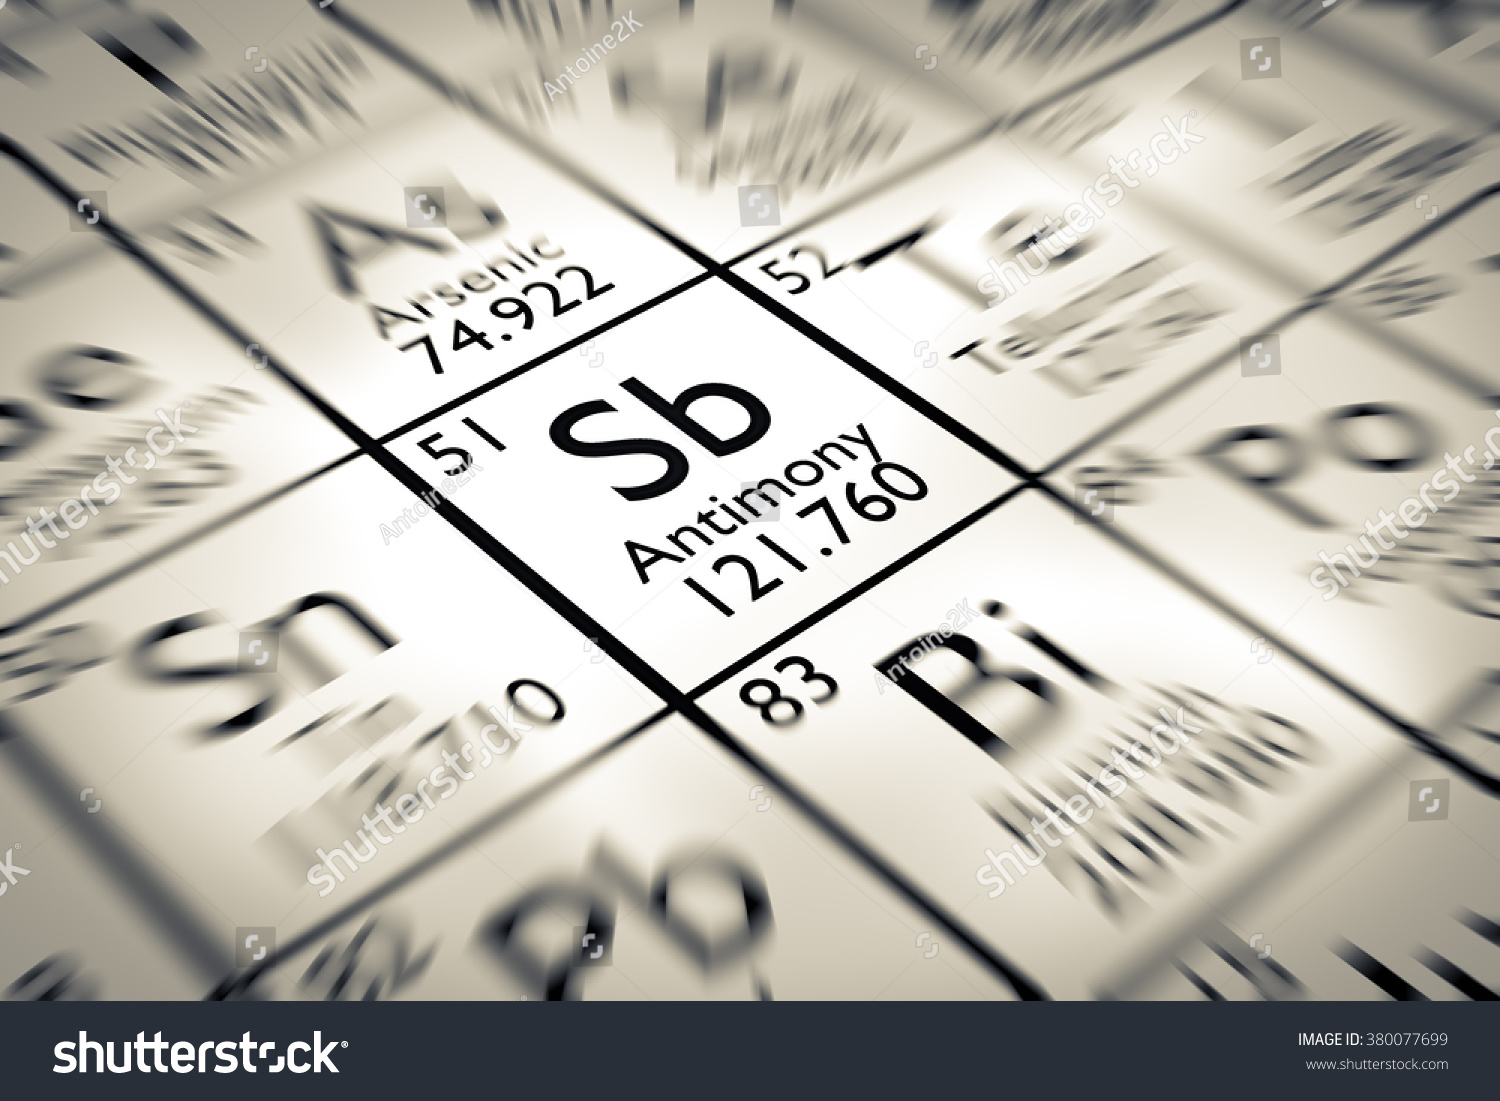 Focus on antimony chemical element mendeleev stock illustration focus on antimony chemical element from the mendeleev periodic table gamestrikefo Choice Image